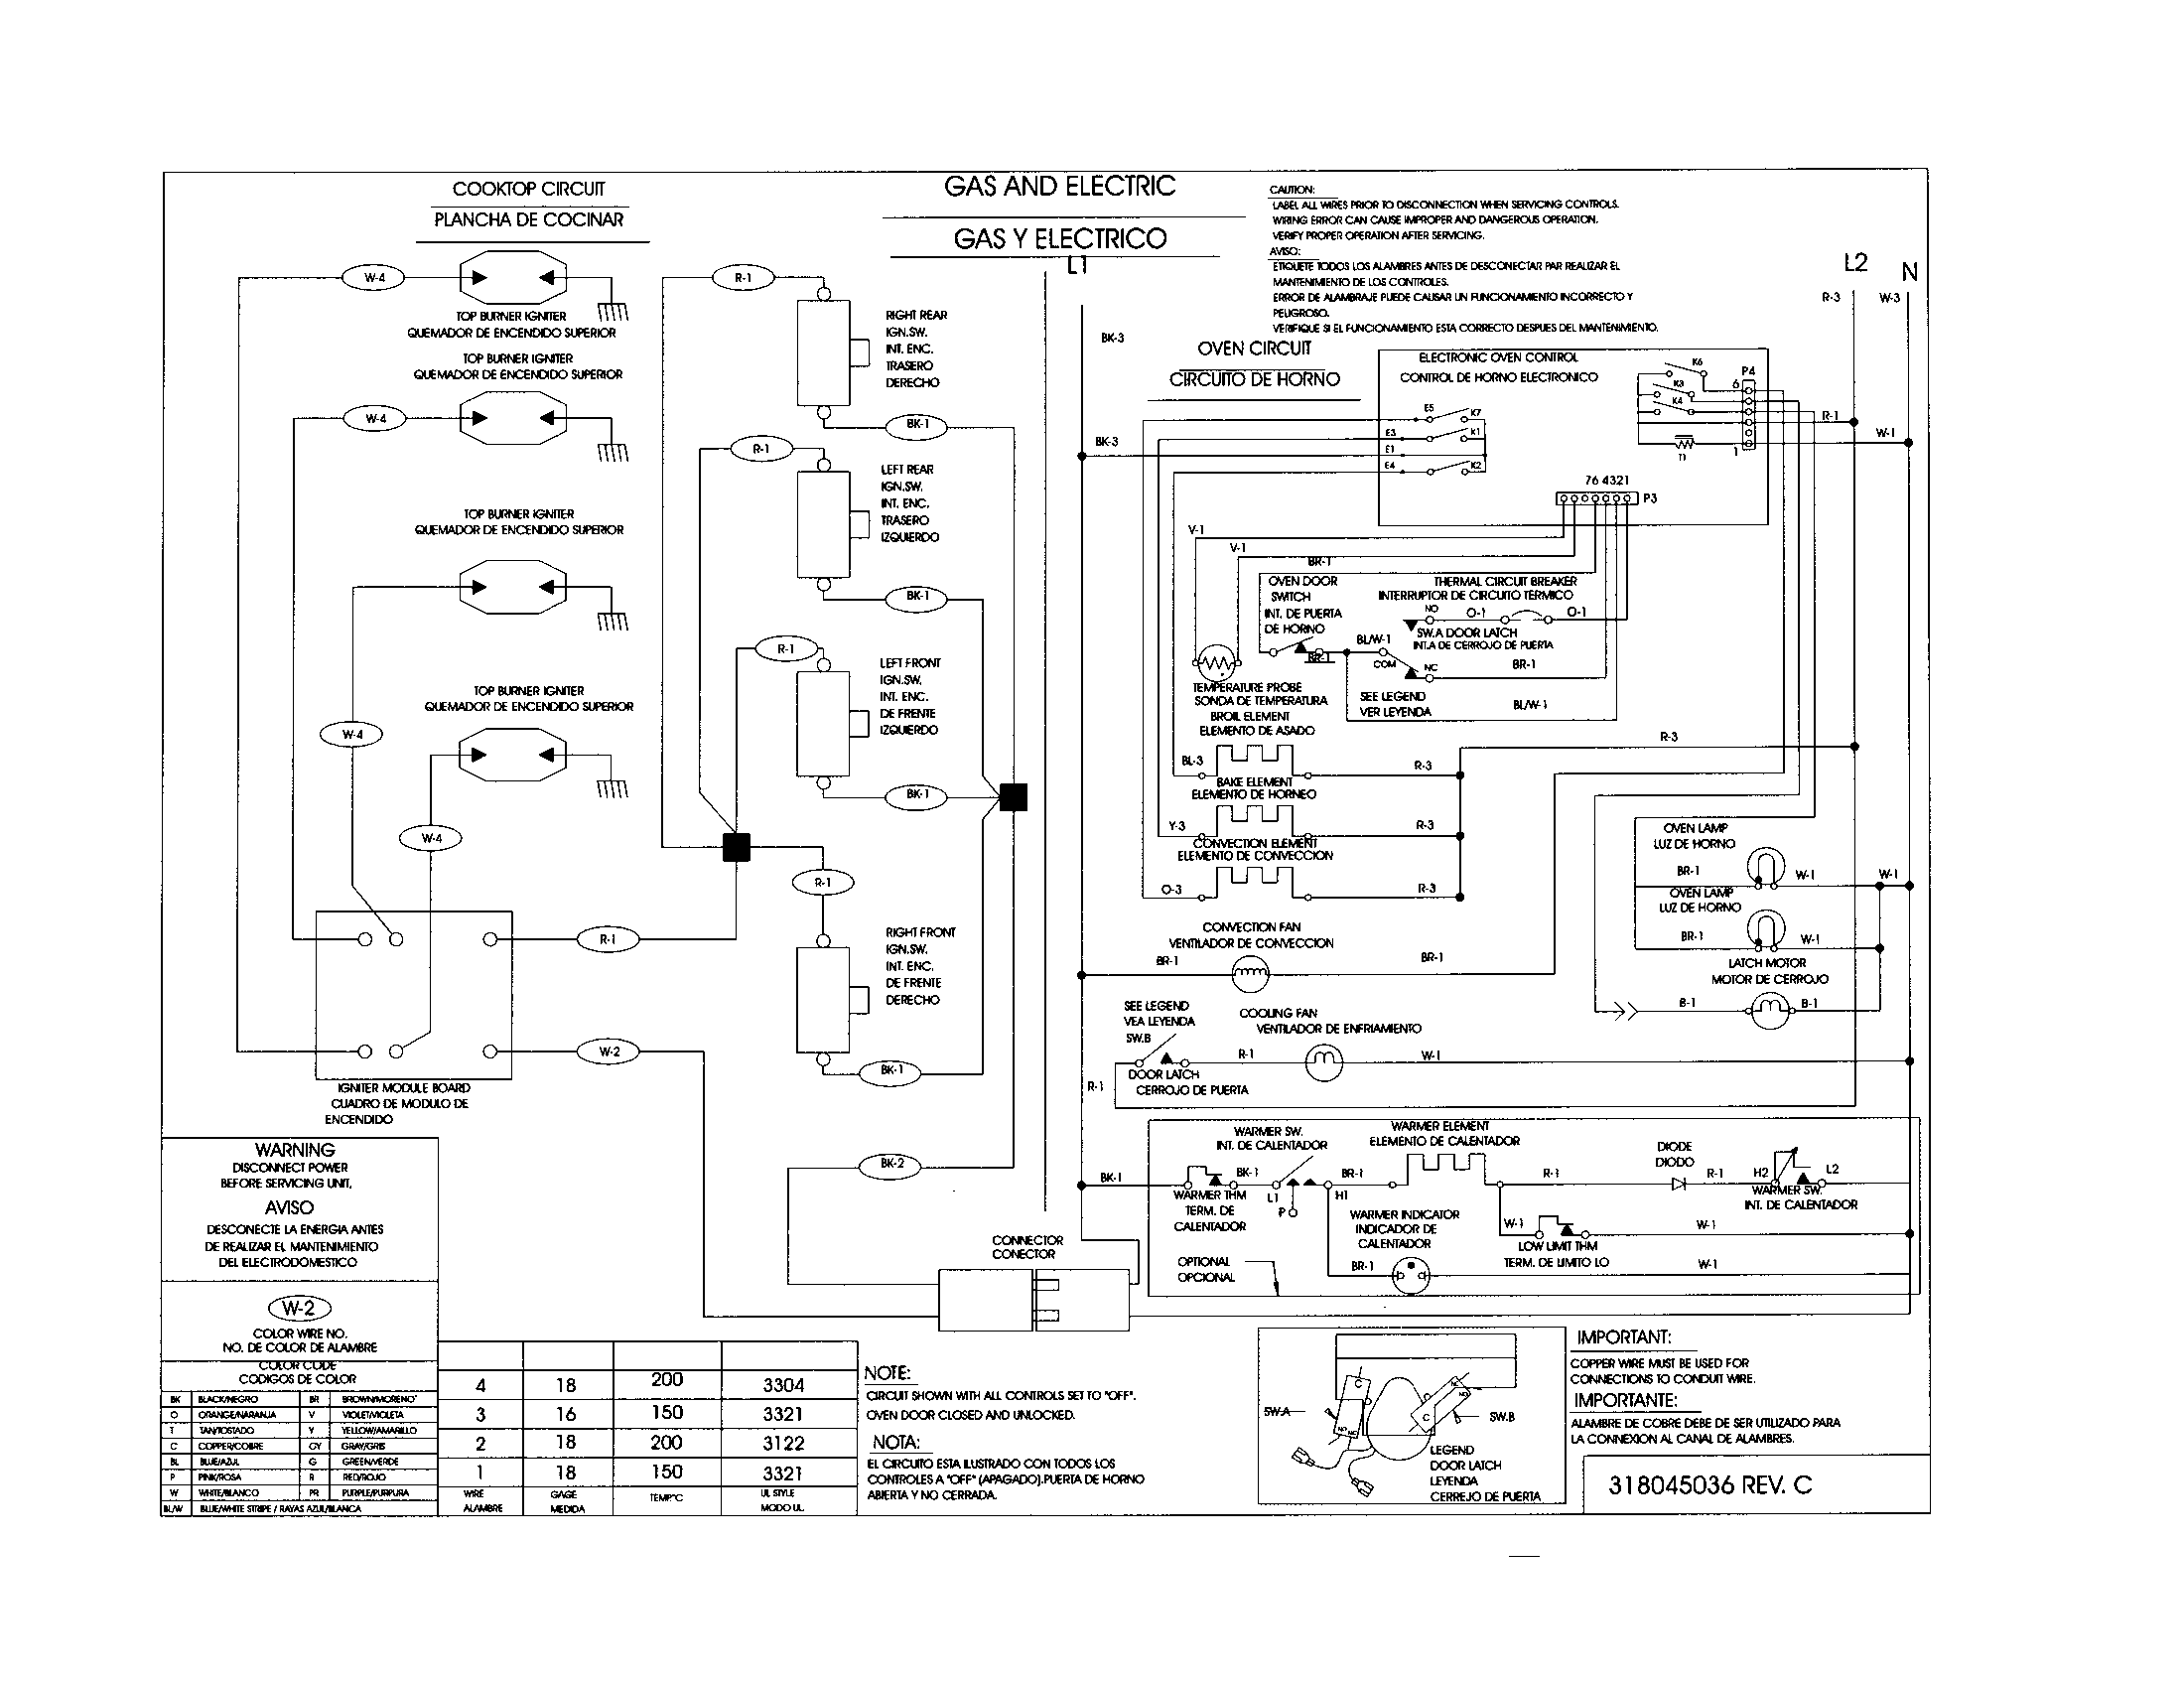 wiring parts kenmore elite 795 circuit diagram refrigerator troubleshooting beverage air freezer wiring diagram at virtualis.co